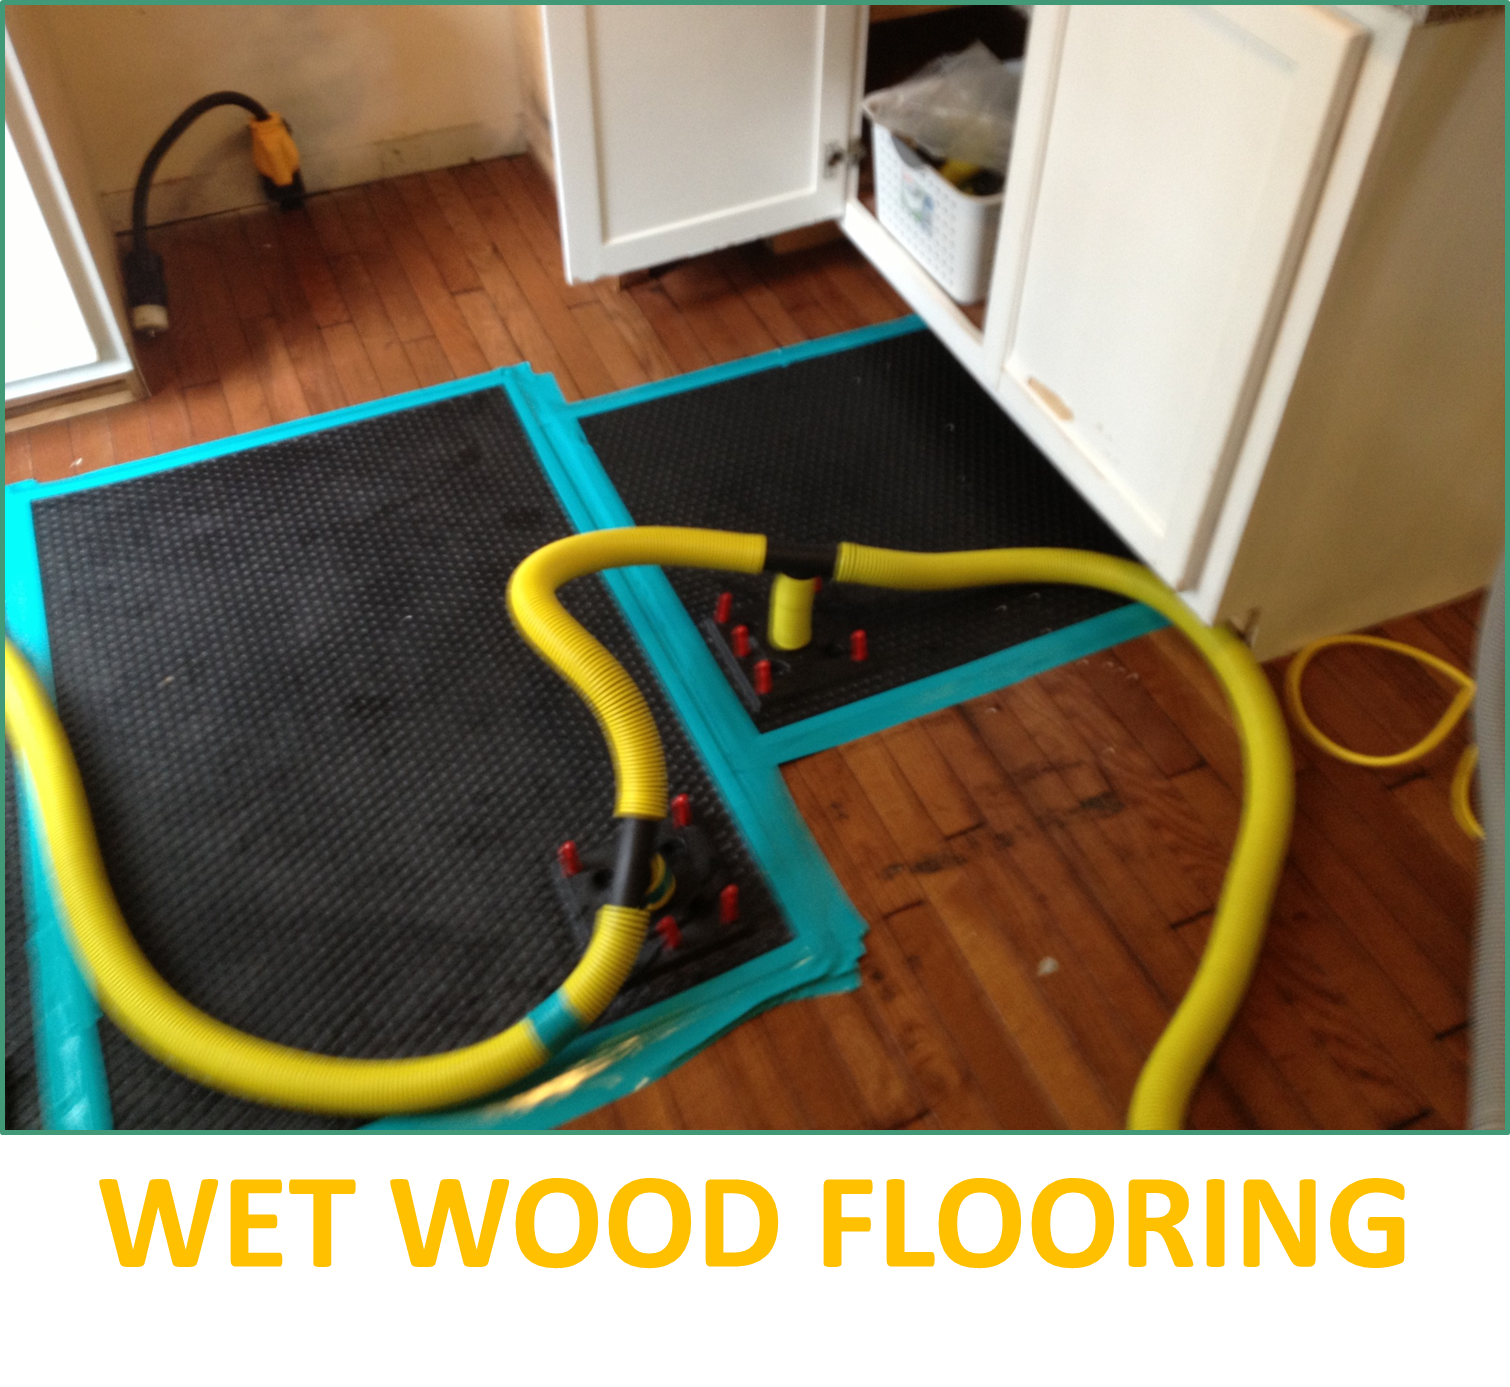 Pipe leak almost damaged wood flooring, Roofing Experts saved wood flooring!